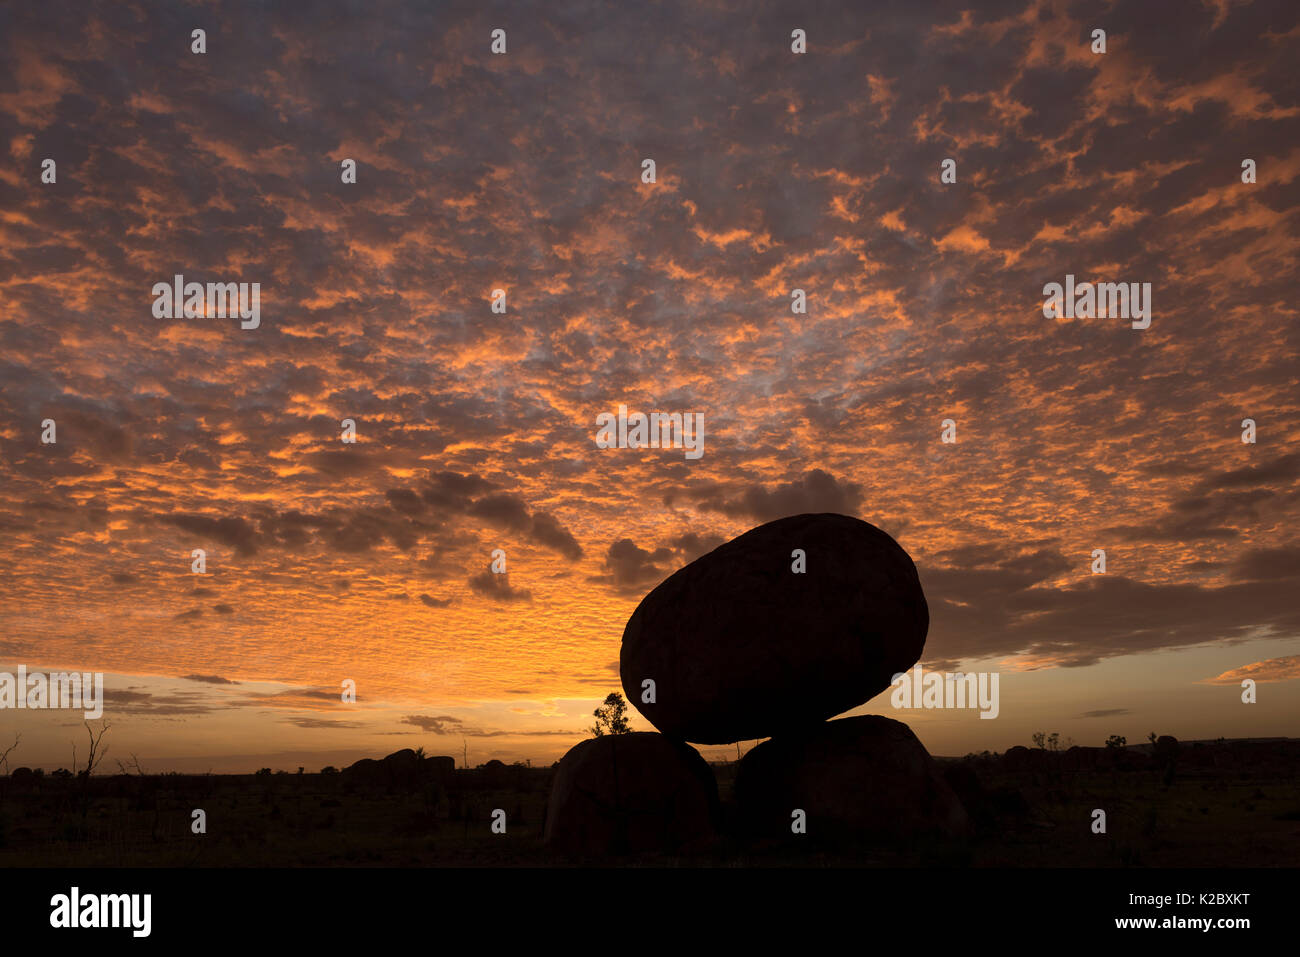 Devils Marbles silhouetted at sunset, with mackerel sky, Devils Marbles Conservation Reserve, Northern Territory, Australia. - Stock Image